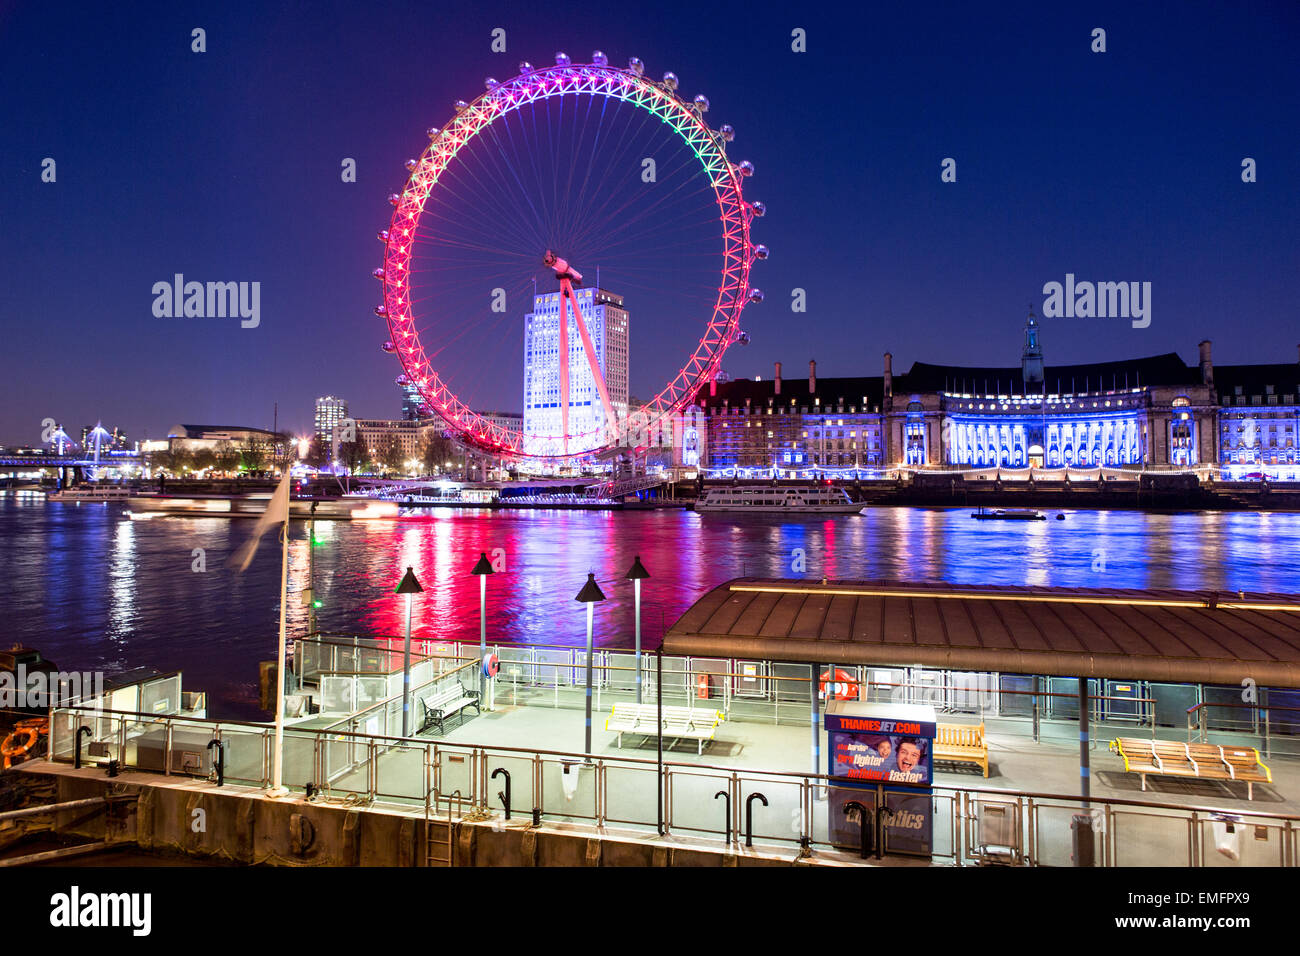 The London Eye and River Thames At Night London UK - Stock Image